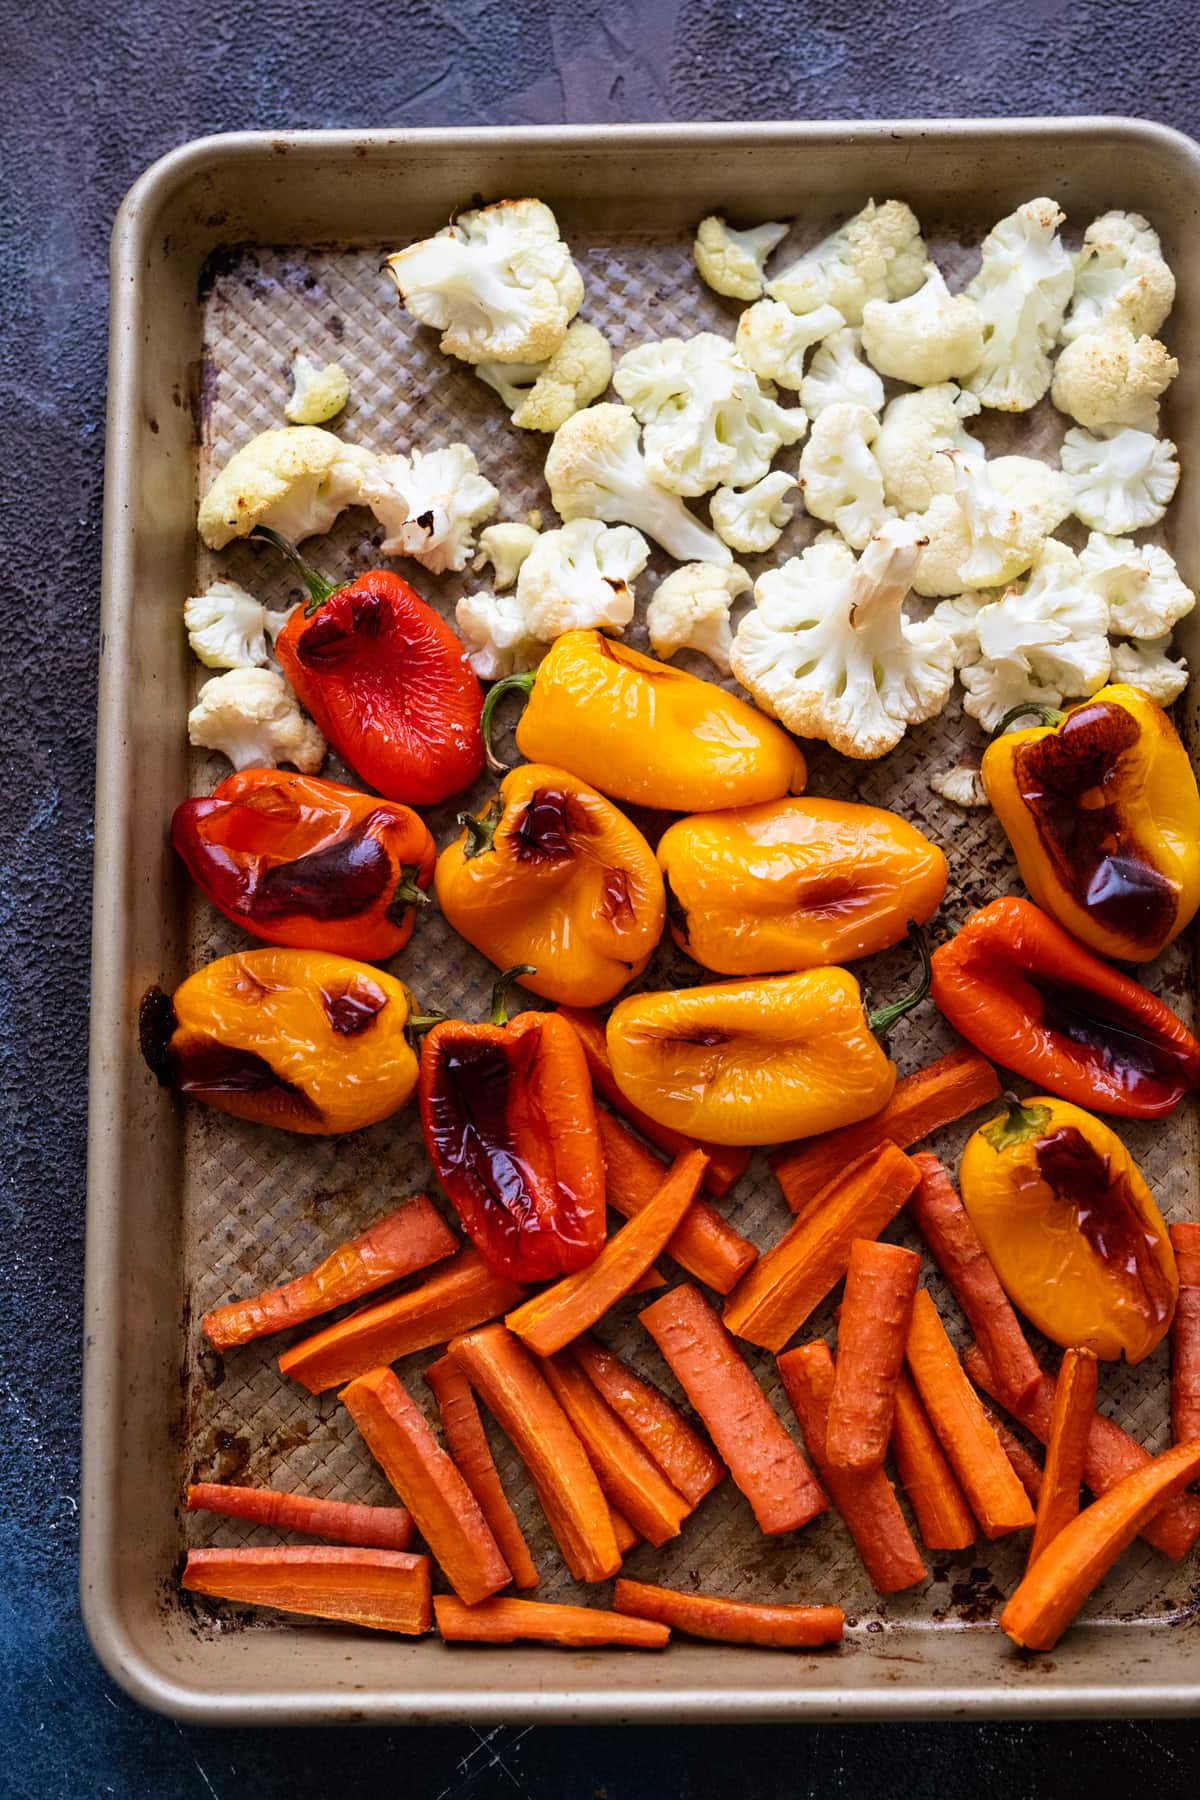 An assortment of roasted vegetables on a sheet pan.